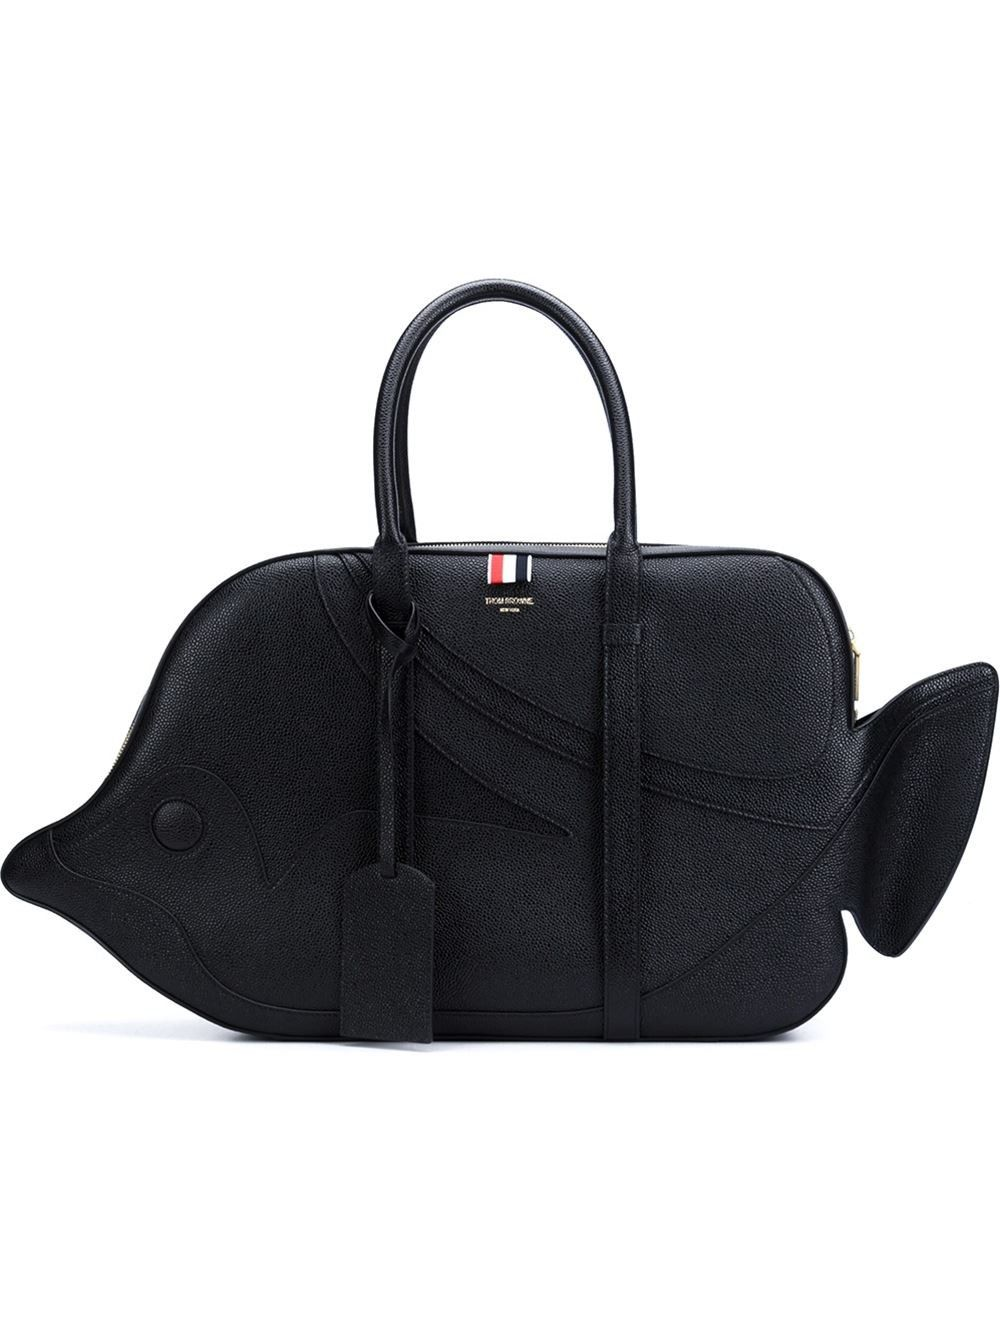 e14f558c89 THOM BROWNE 'Tiger Reef Fish' Bag. #thombrowne #bags #leather #hand bags #